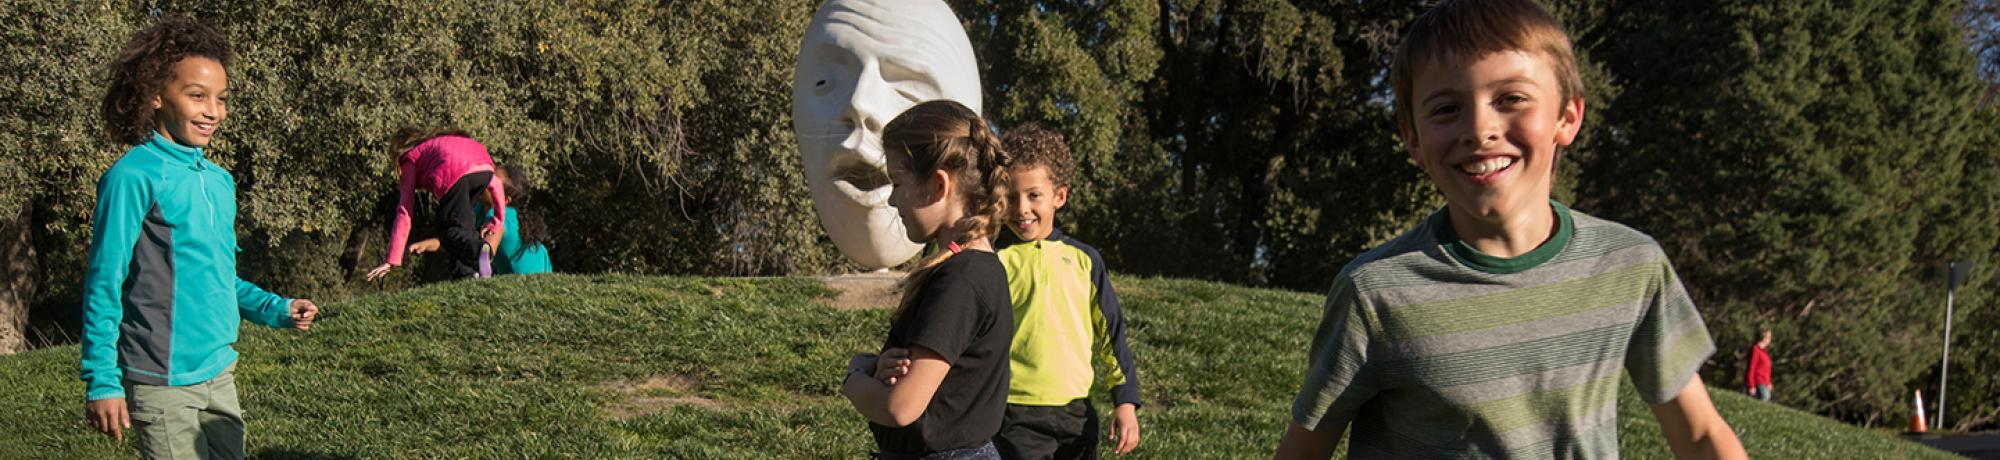 Kids running around egghead at UC Davis.